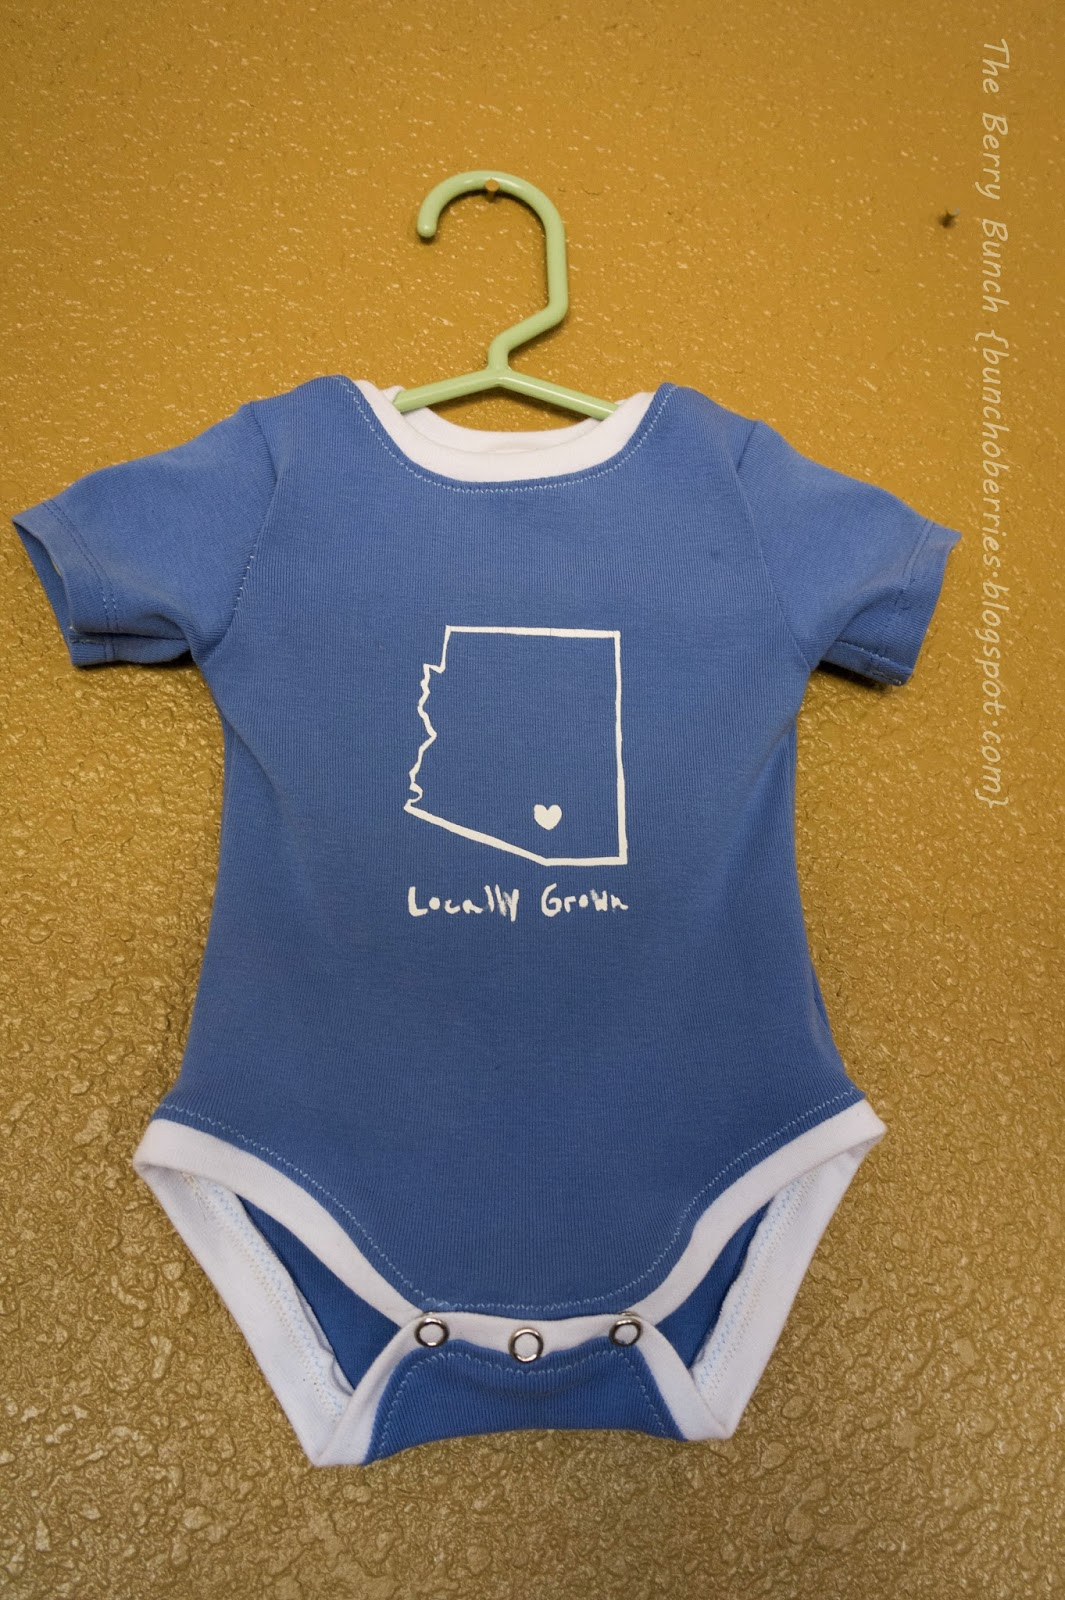 Locally Grown Baby Bodysuit: Peek-A-Boo Pattern Shop Lullaby Bodysuit: The Berry Bunch